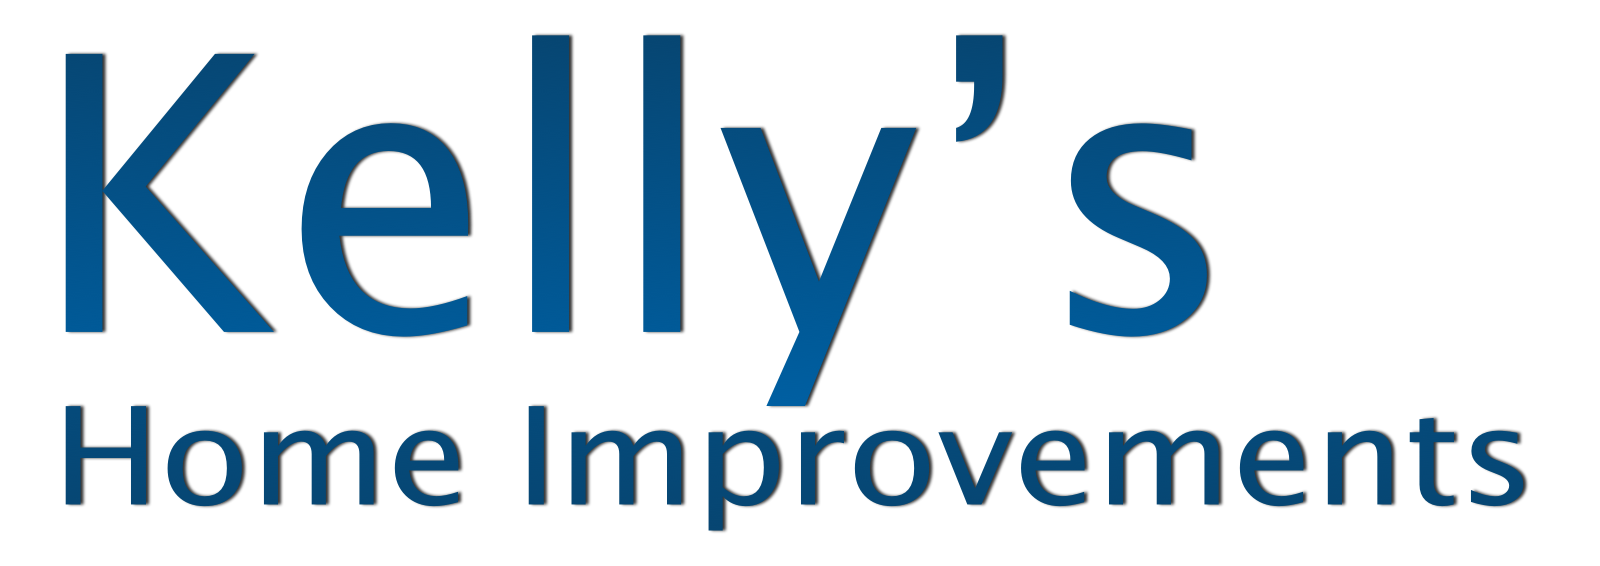 Kelly's Home Improvements logo in blue